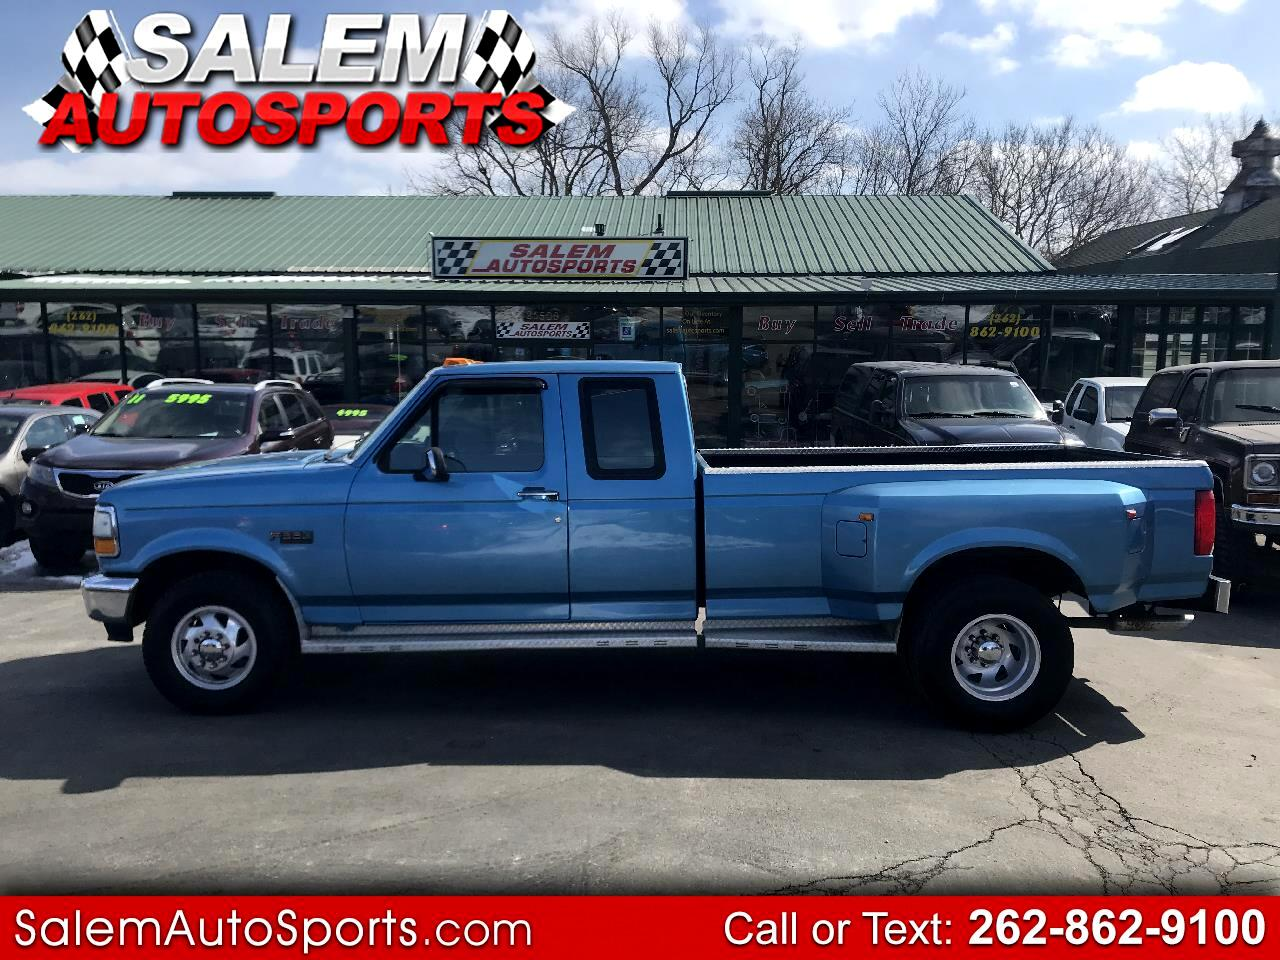 1993 Ford F-350 Supercab Styleside 155